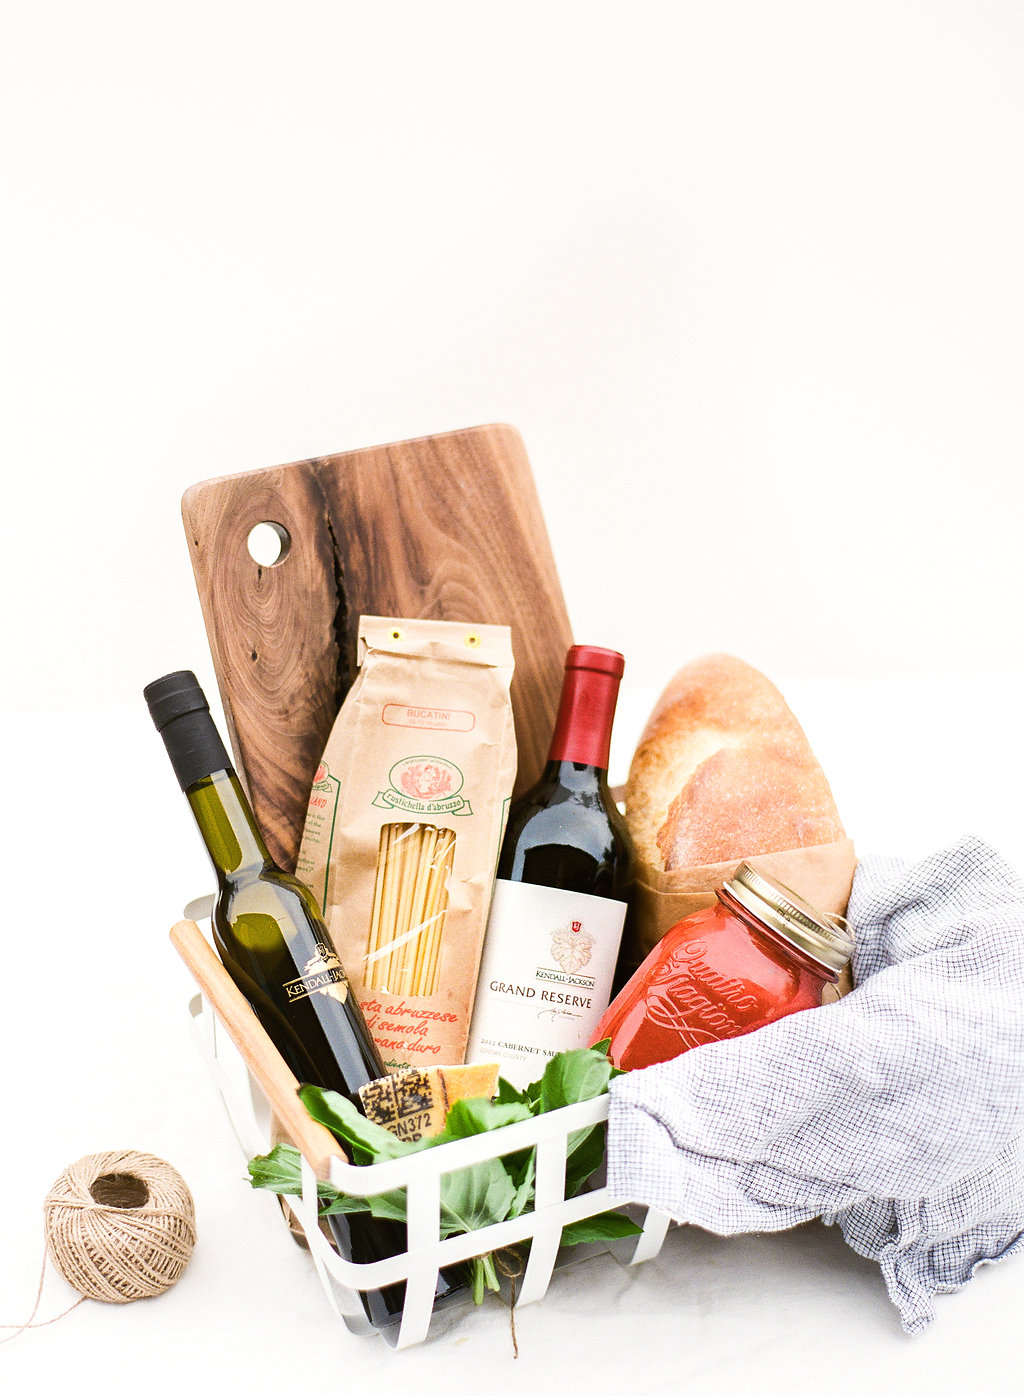 These 4 simple steps to creating your own neighborhood gift basket will make you the favorite on the block in no time.